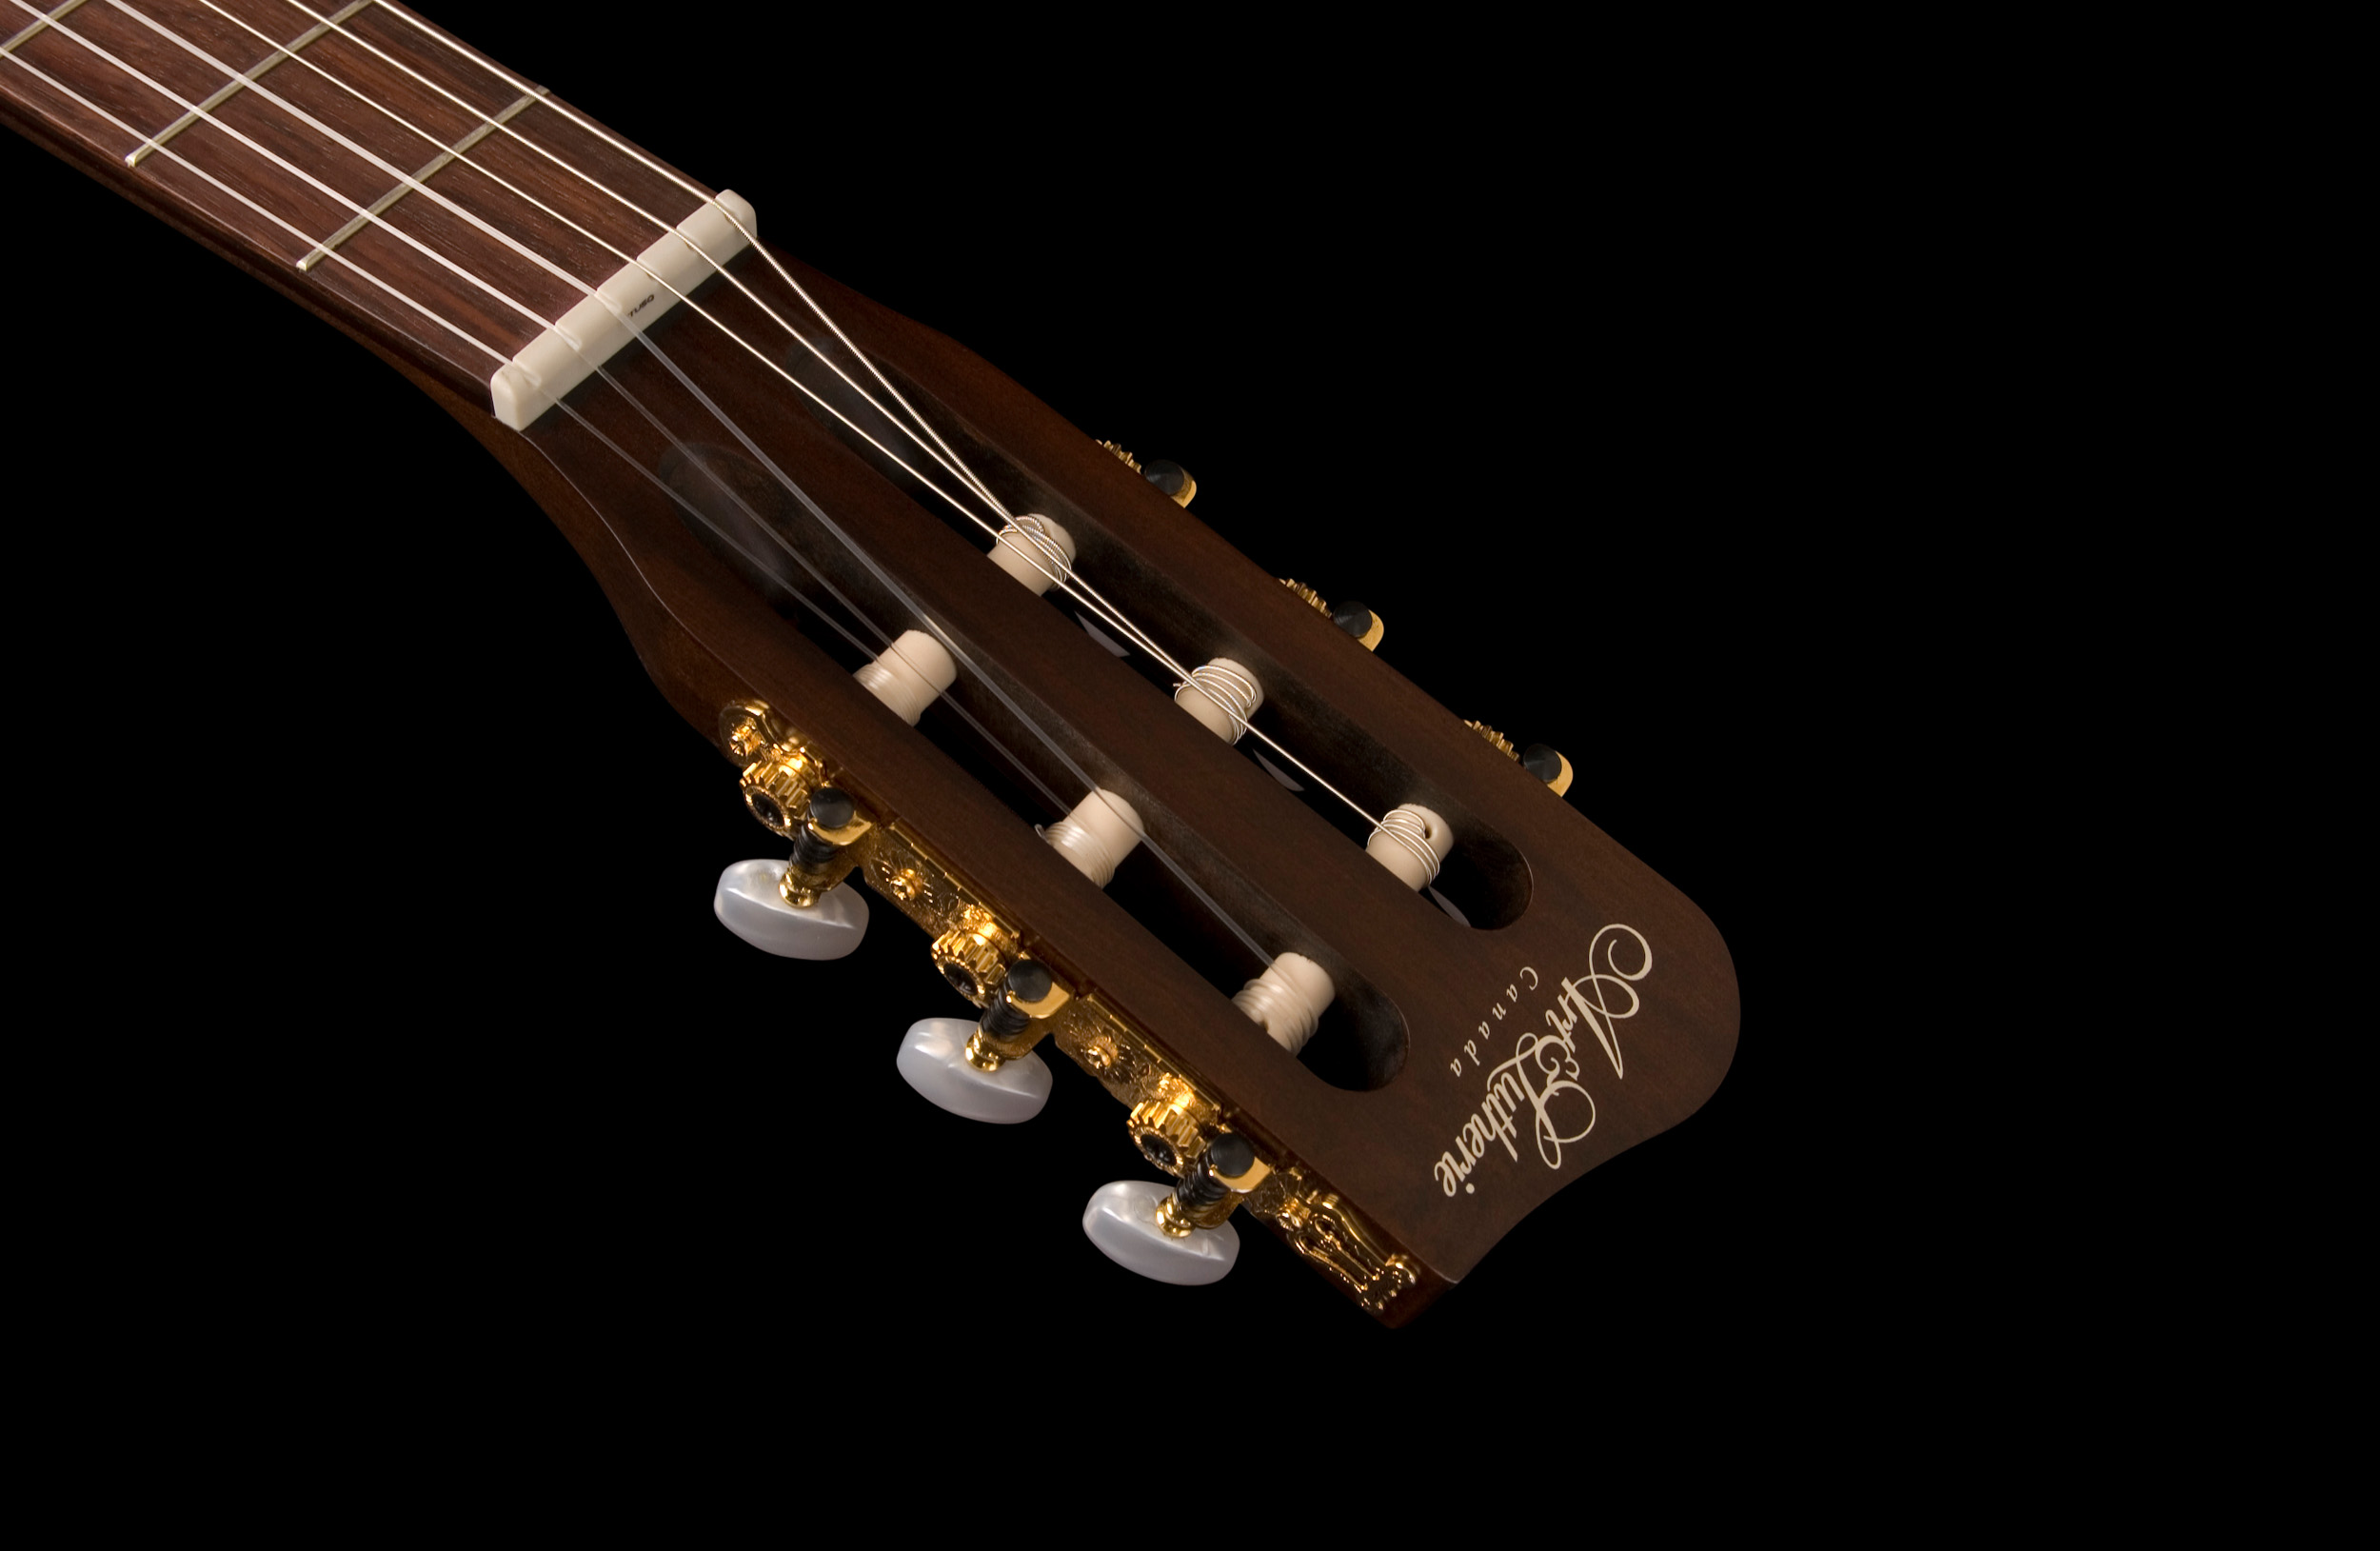 46591_roadhouse_nylon_bbst_headstock.jpg